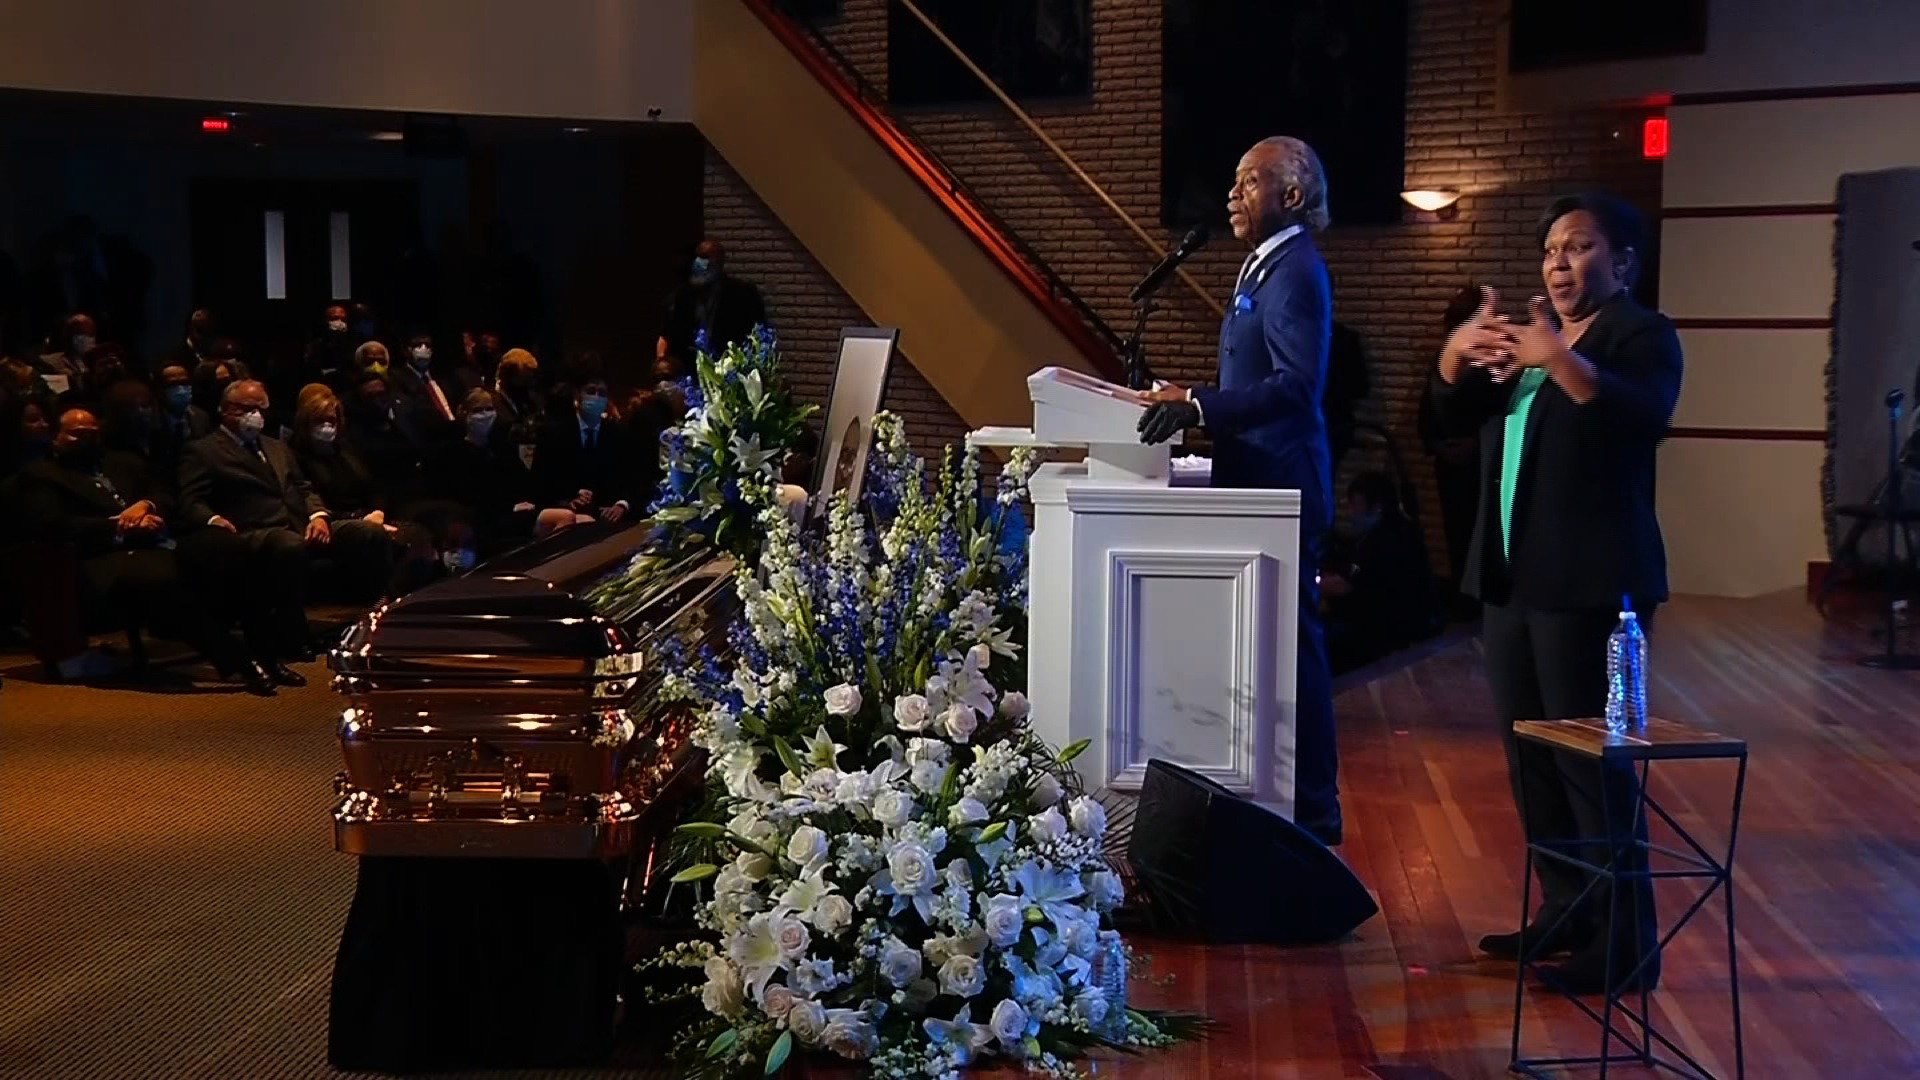 Reverend Al Sharpton delivers powerful eulogy at George Floyd